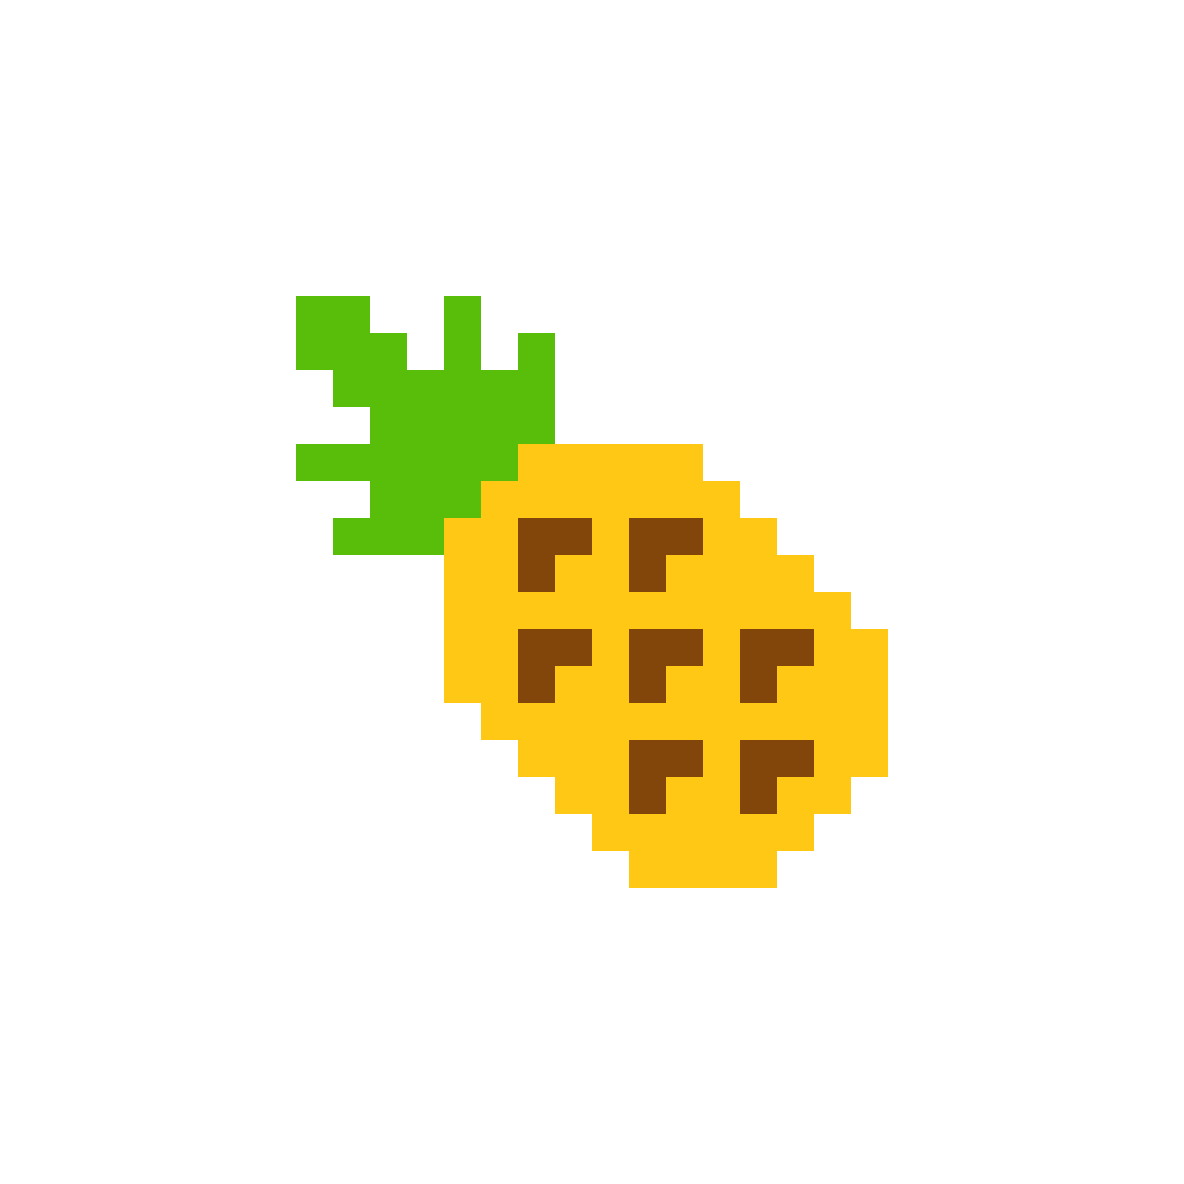 Pineapple by Insano